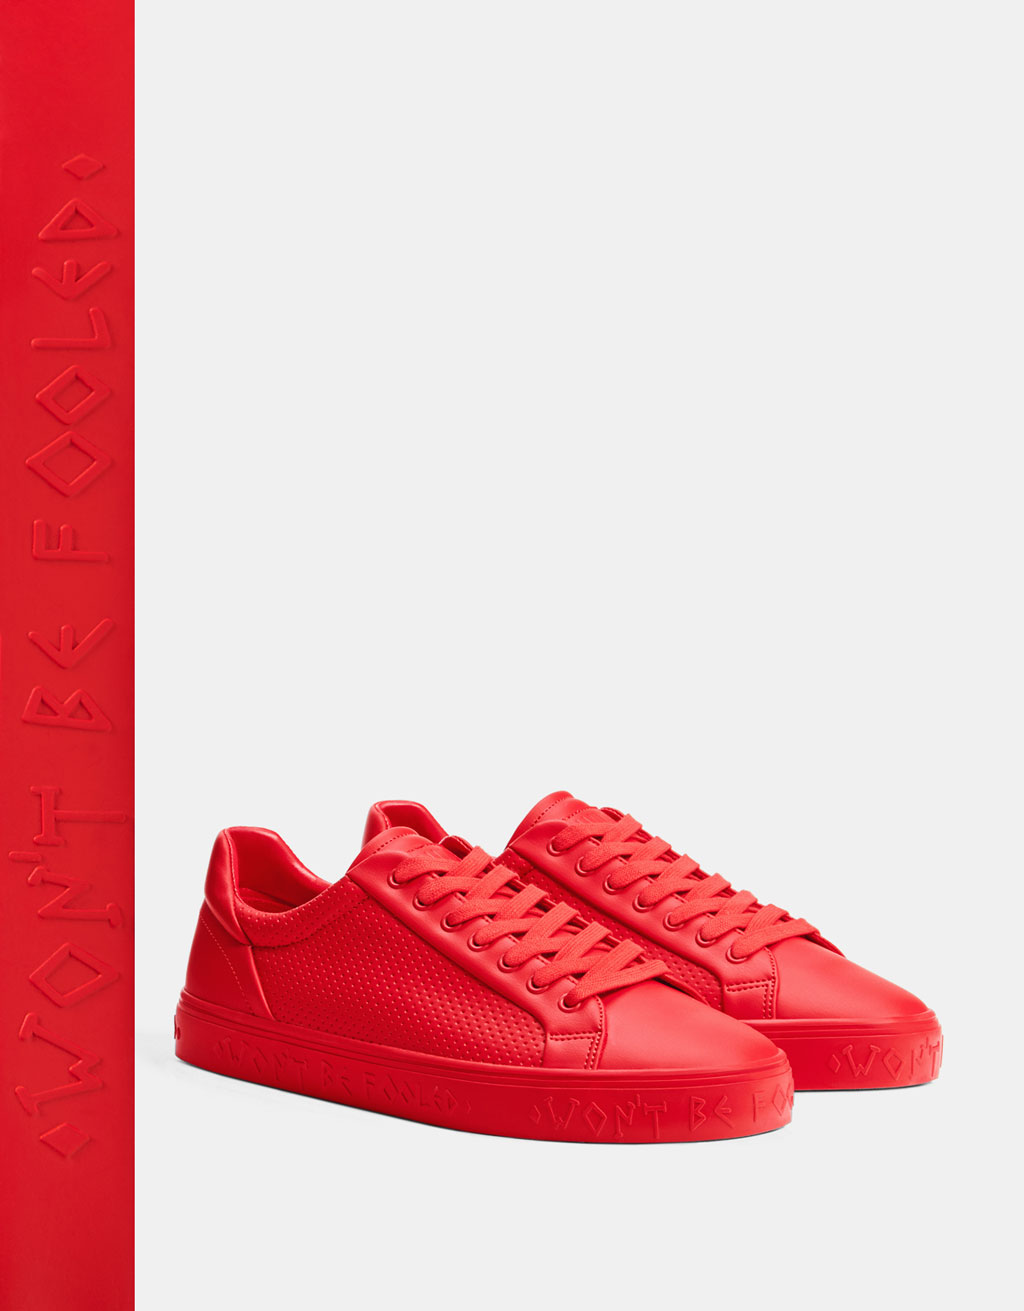 Men's red perforated sneakers